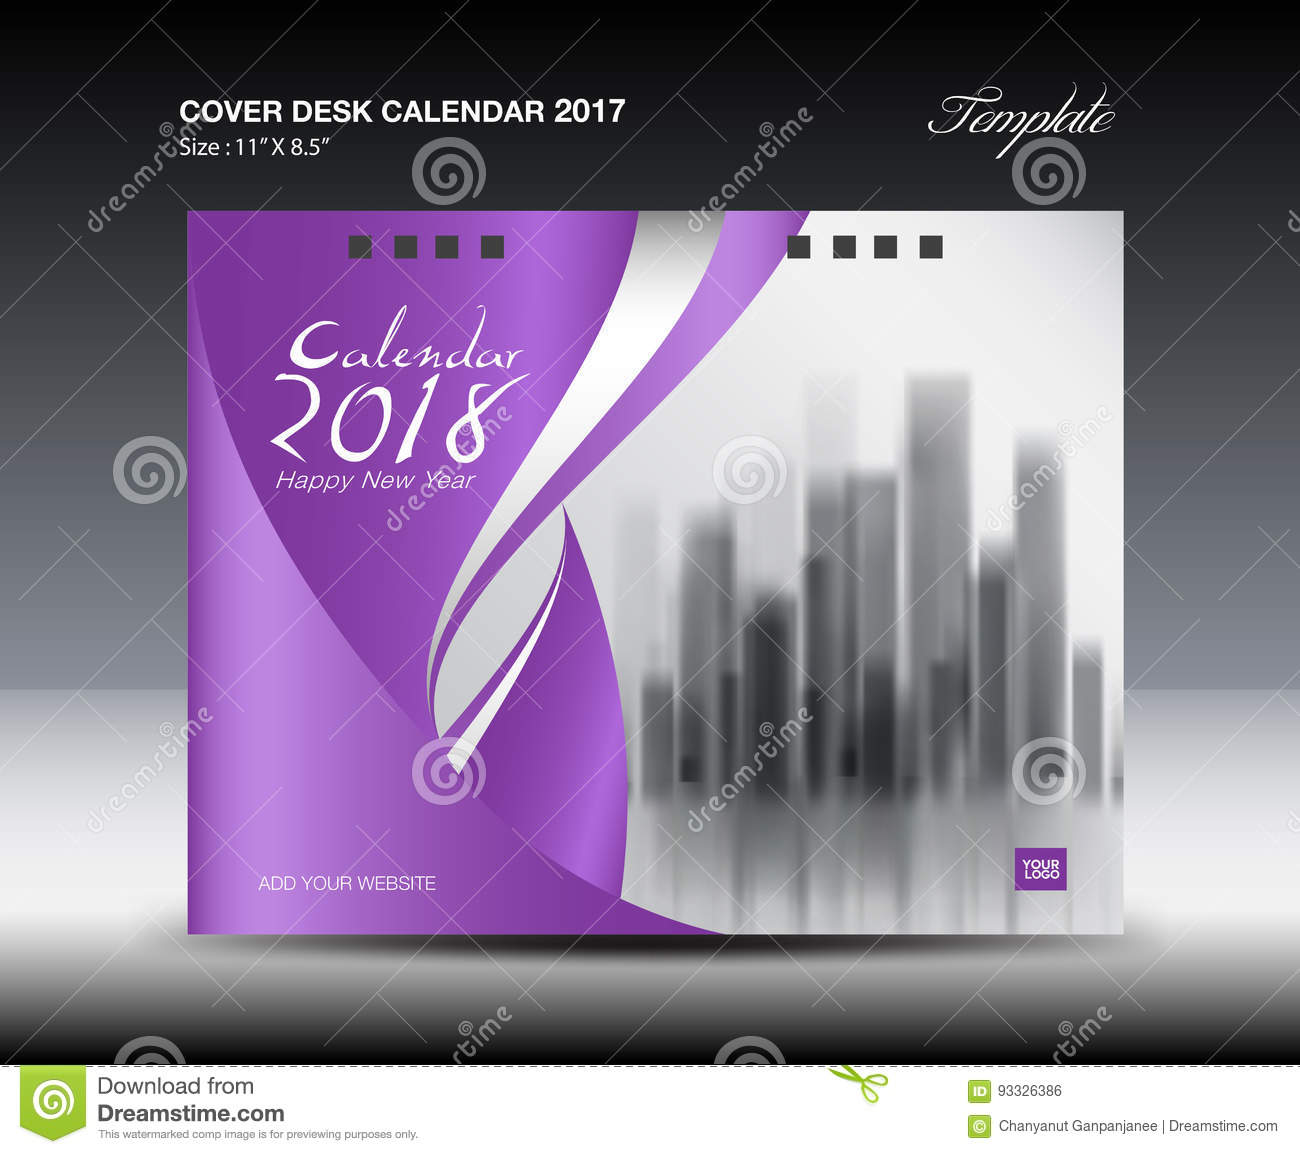 Calendar Cover Design 2014 : Purple cover desk calendar design flyer template